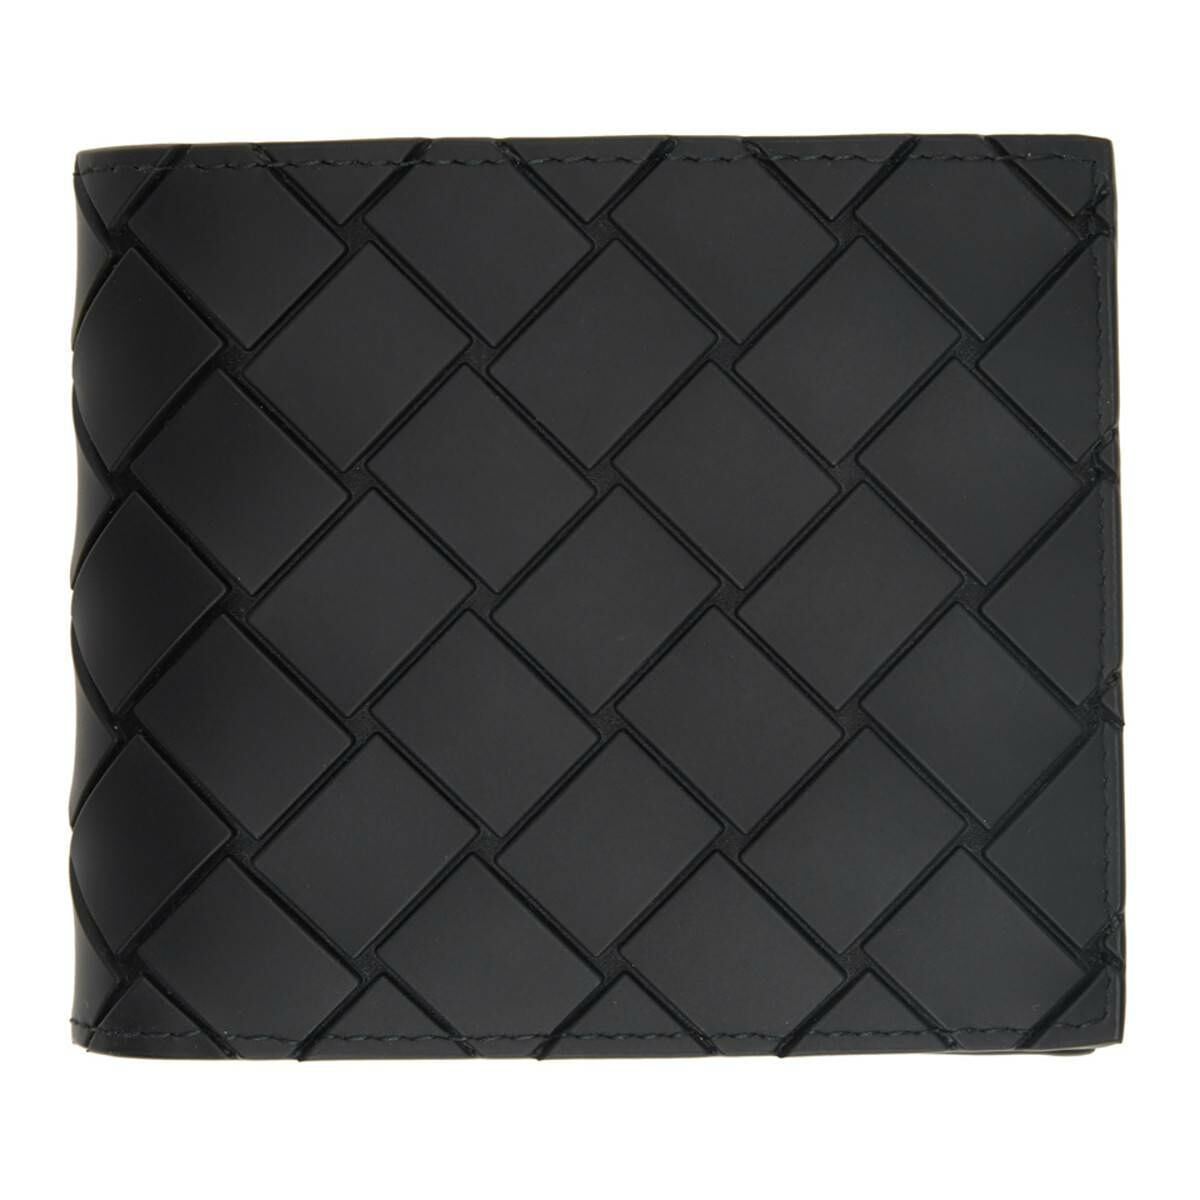 Bottega Veneta Black Rubber Intrecciato Bifold Wallet Ssense USA MEN Men ACCESSORIES Mens WALLETS